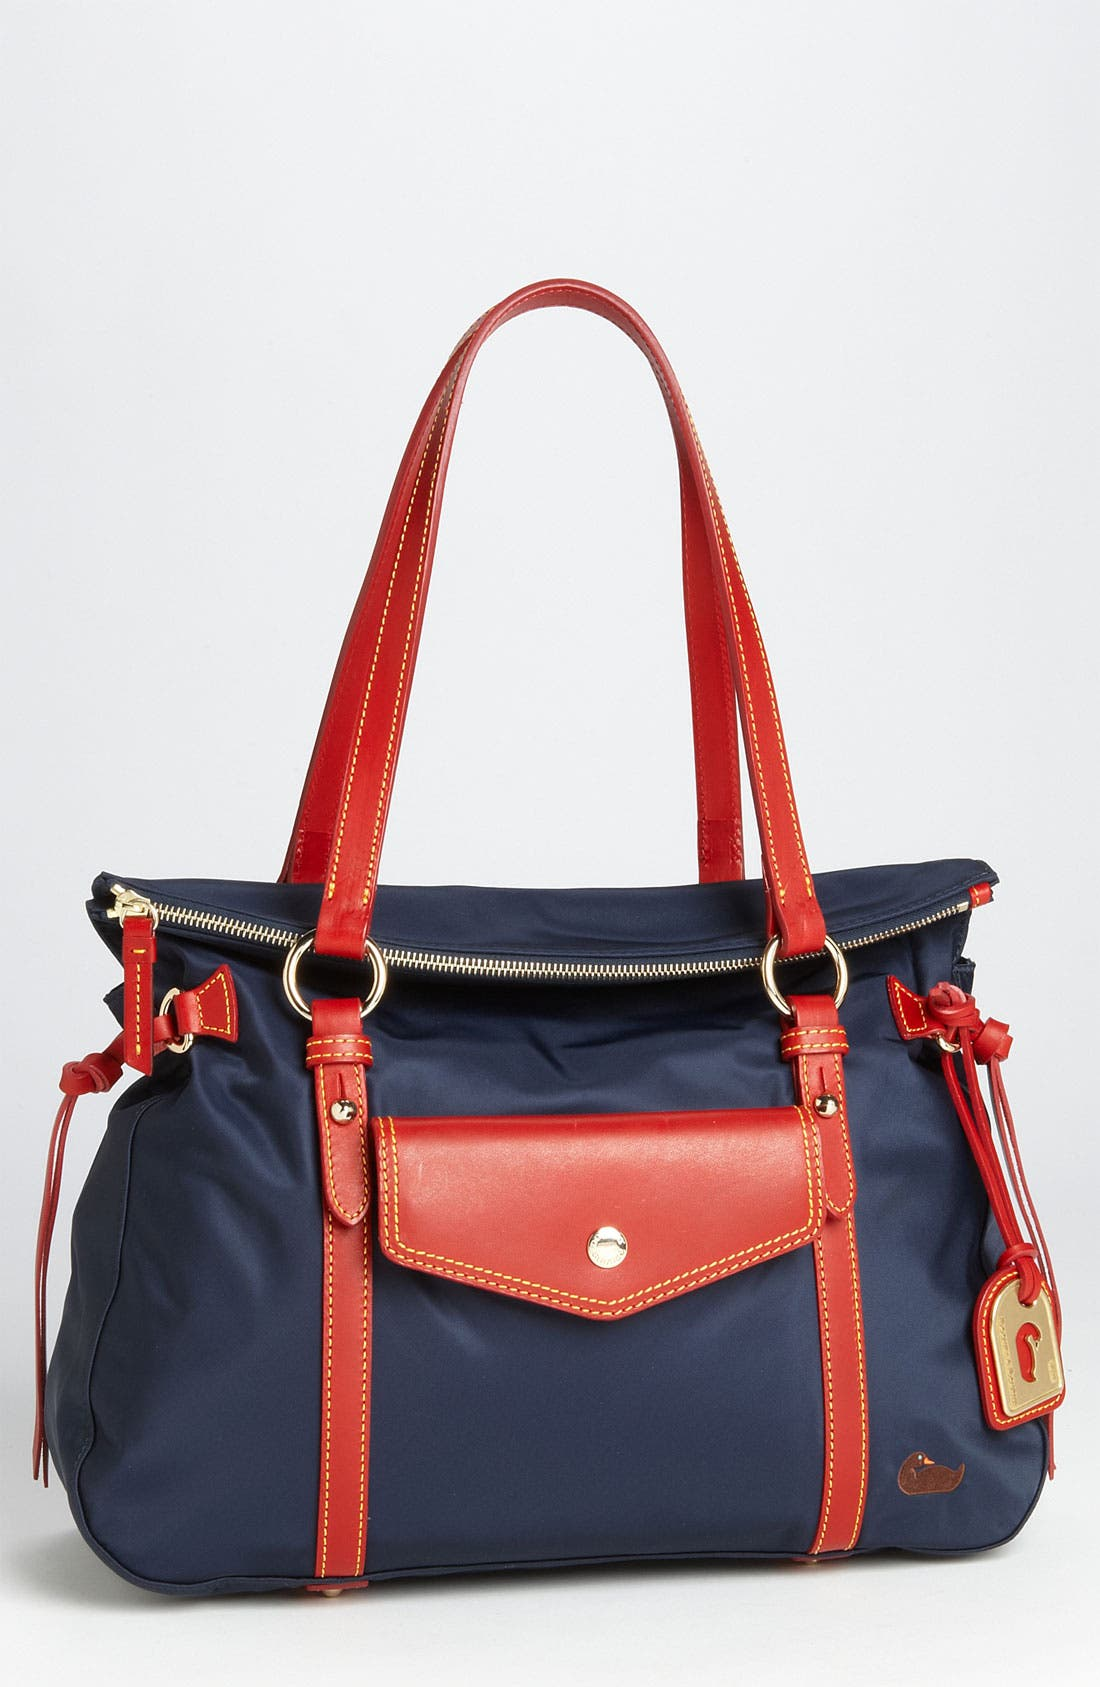 Main Image - Dooney & Bourke 'The Smith' Shopper